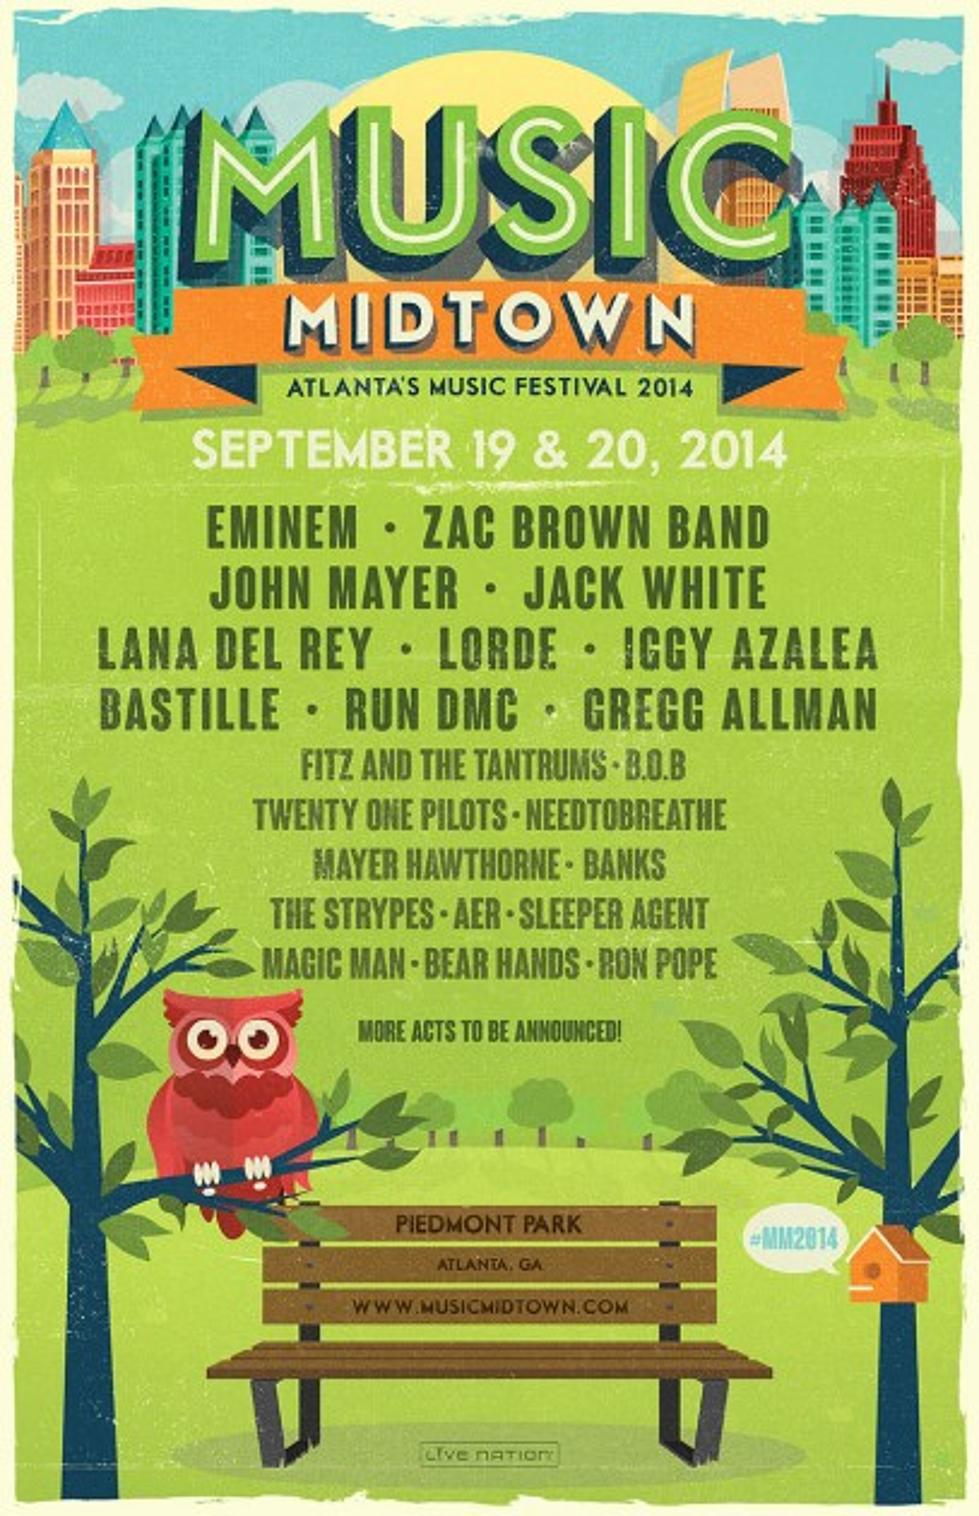 Atlanta's Music Midtown 2014 Lineup Announced